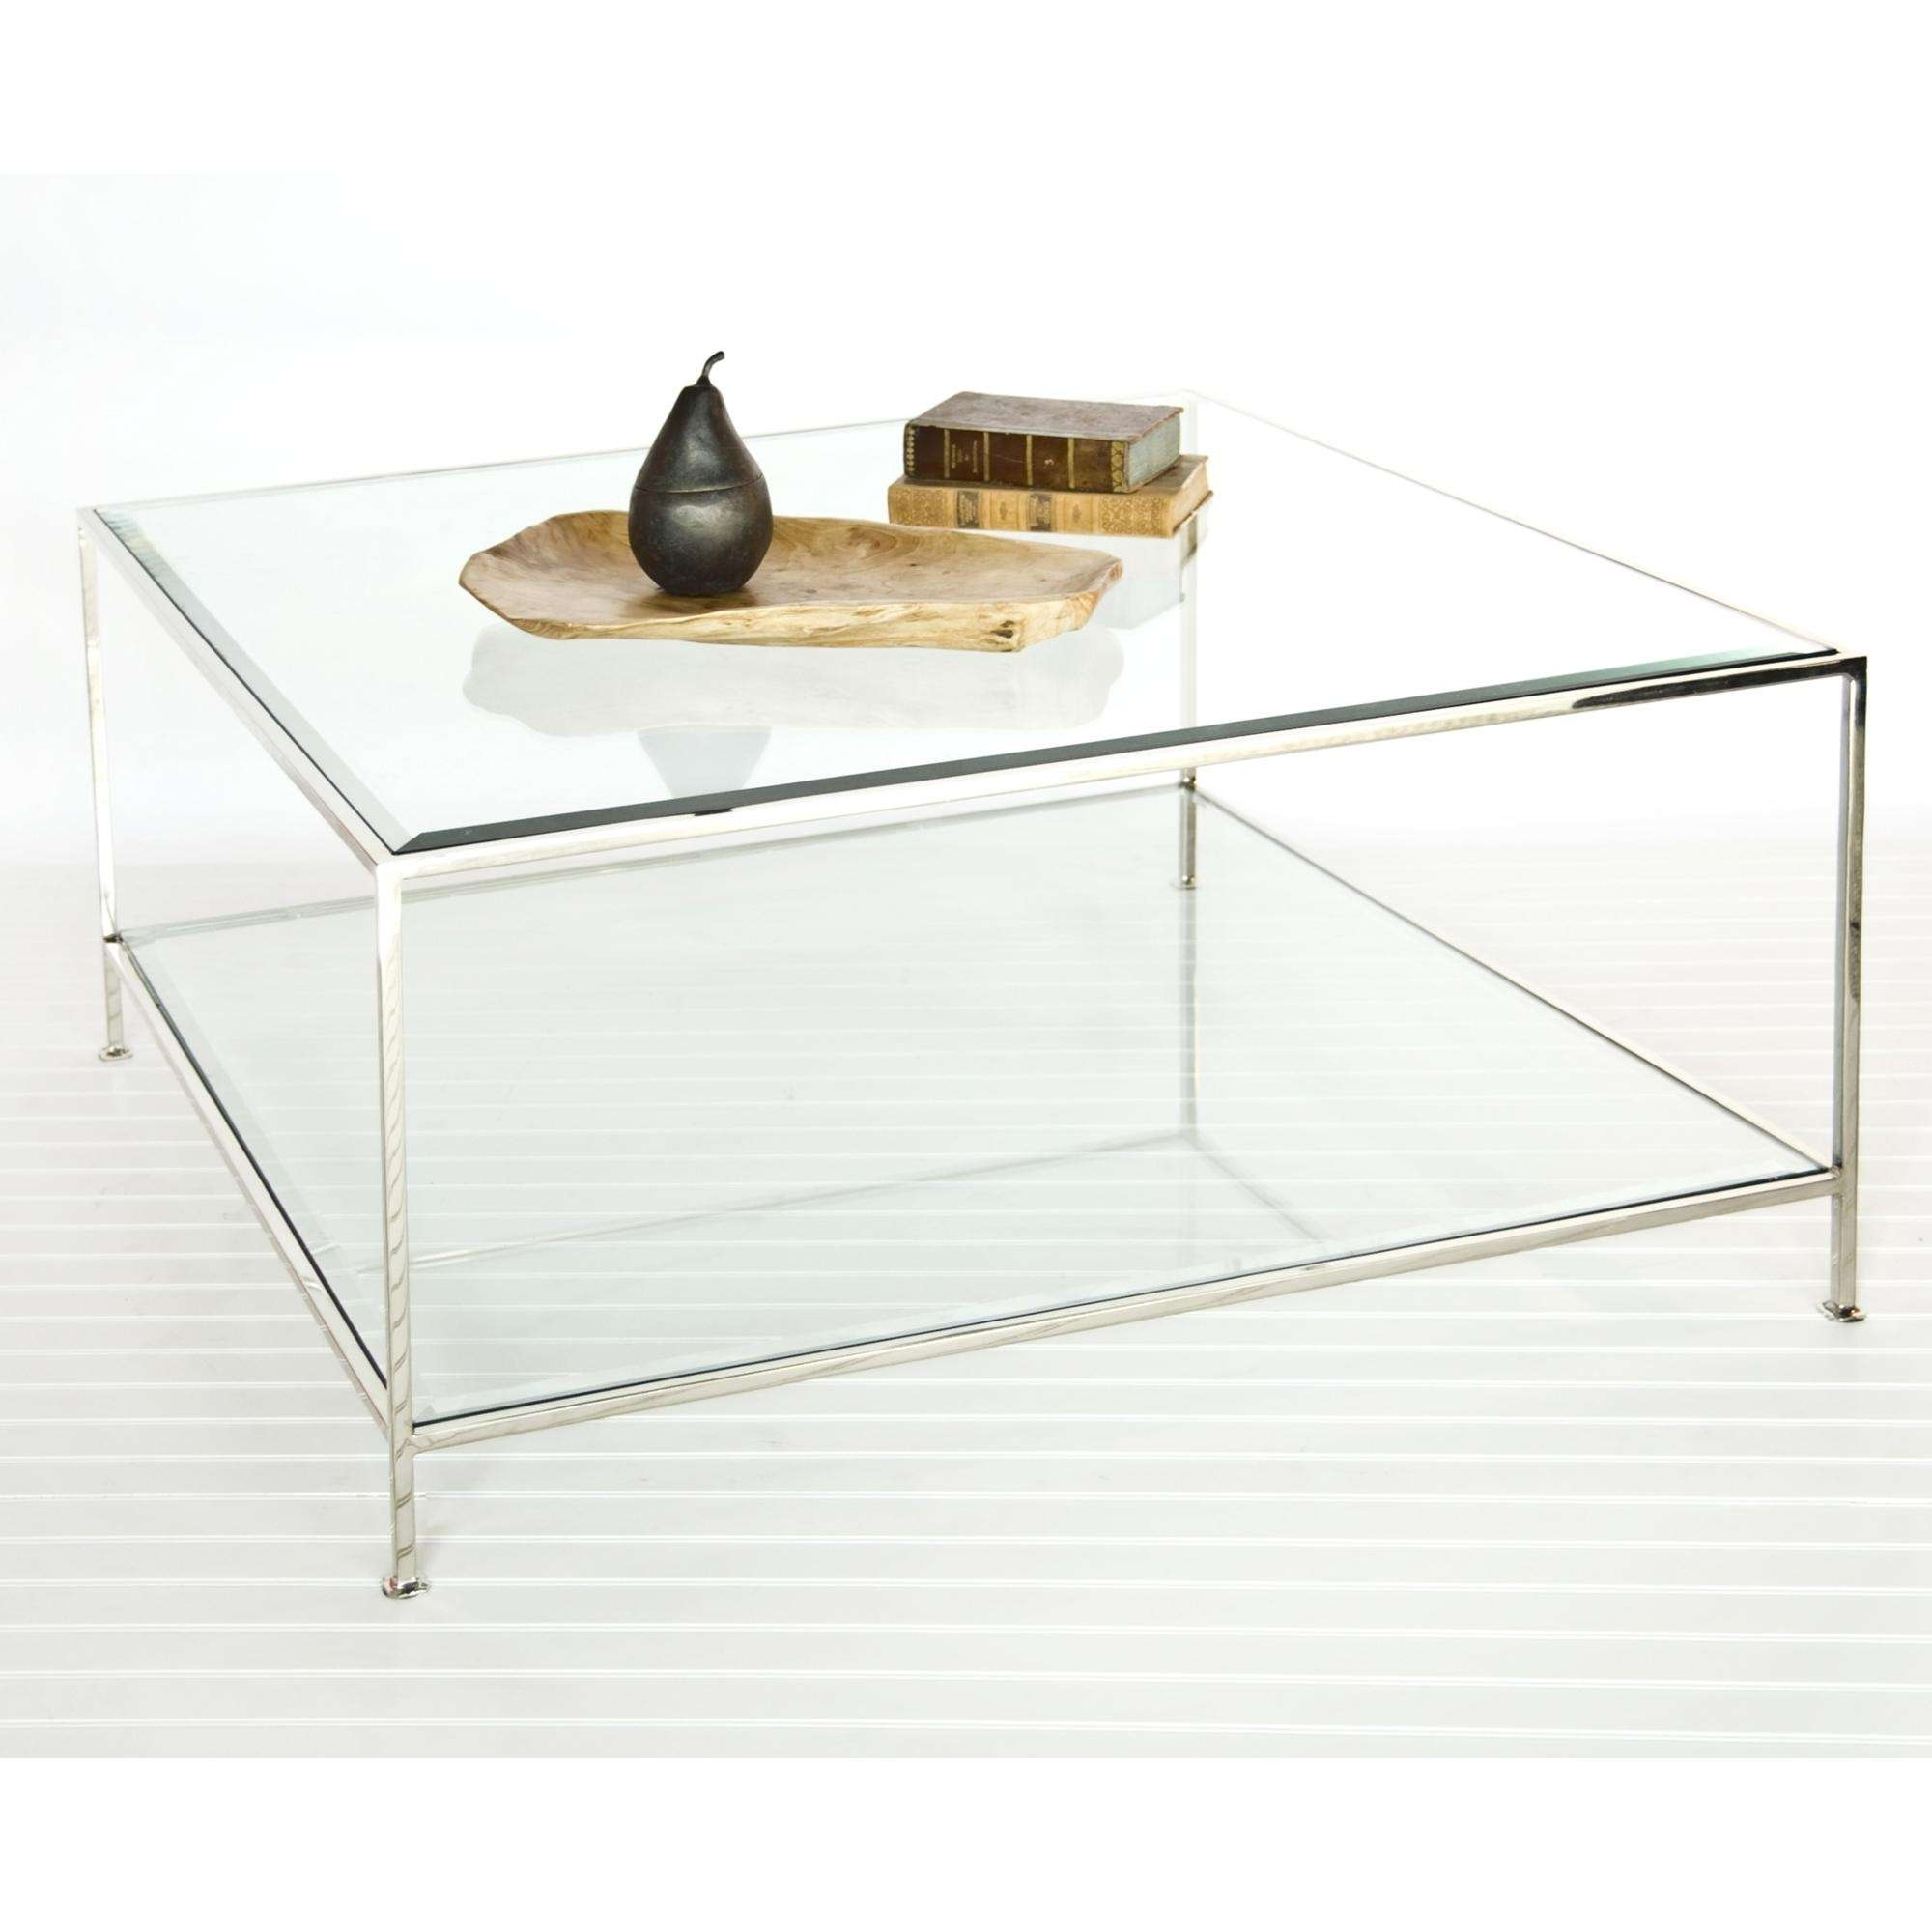 Large Square Glass Coffee Table – Glass Coffee Table Throughout Recent Metal Square Coffee Tables (View 15 of 20)